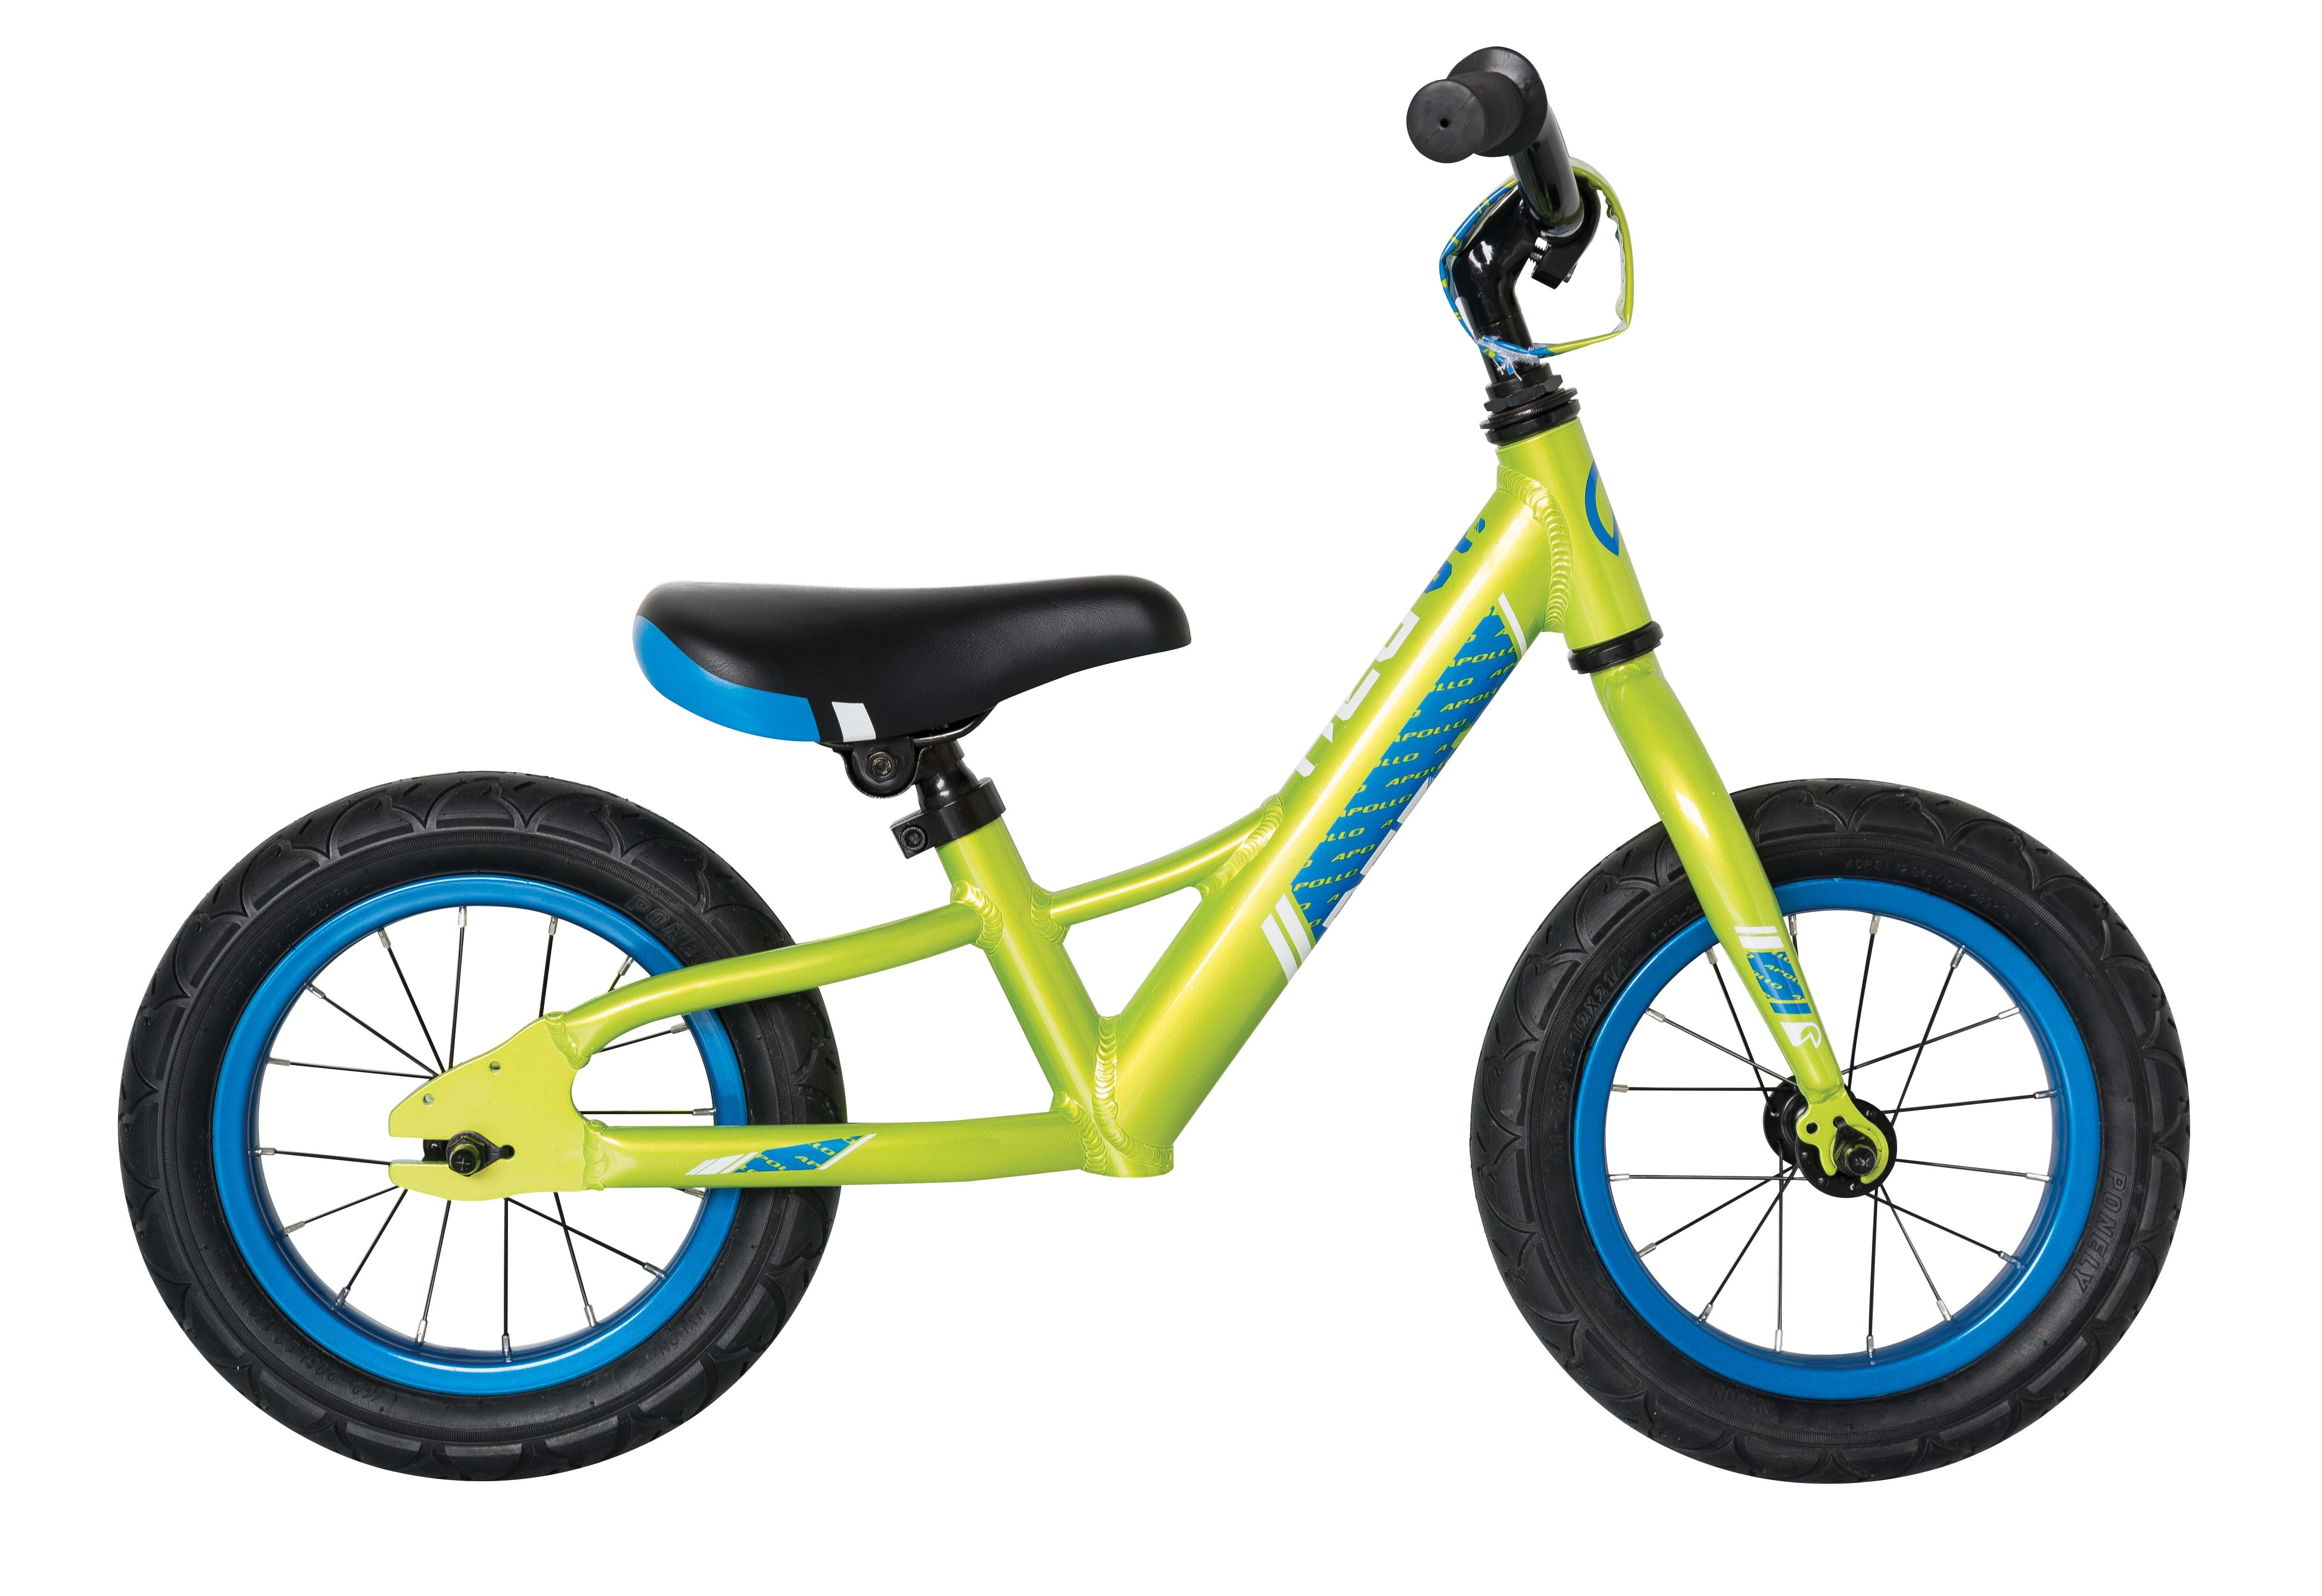 Bicycle clipart kid bike. Free pictures of kids